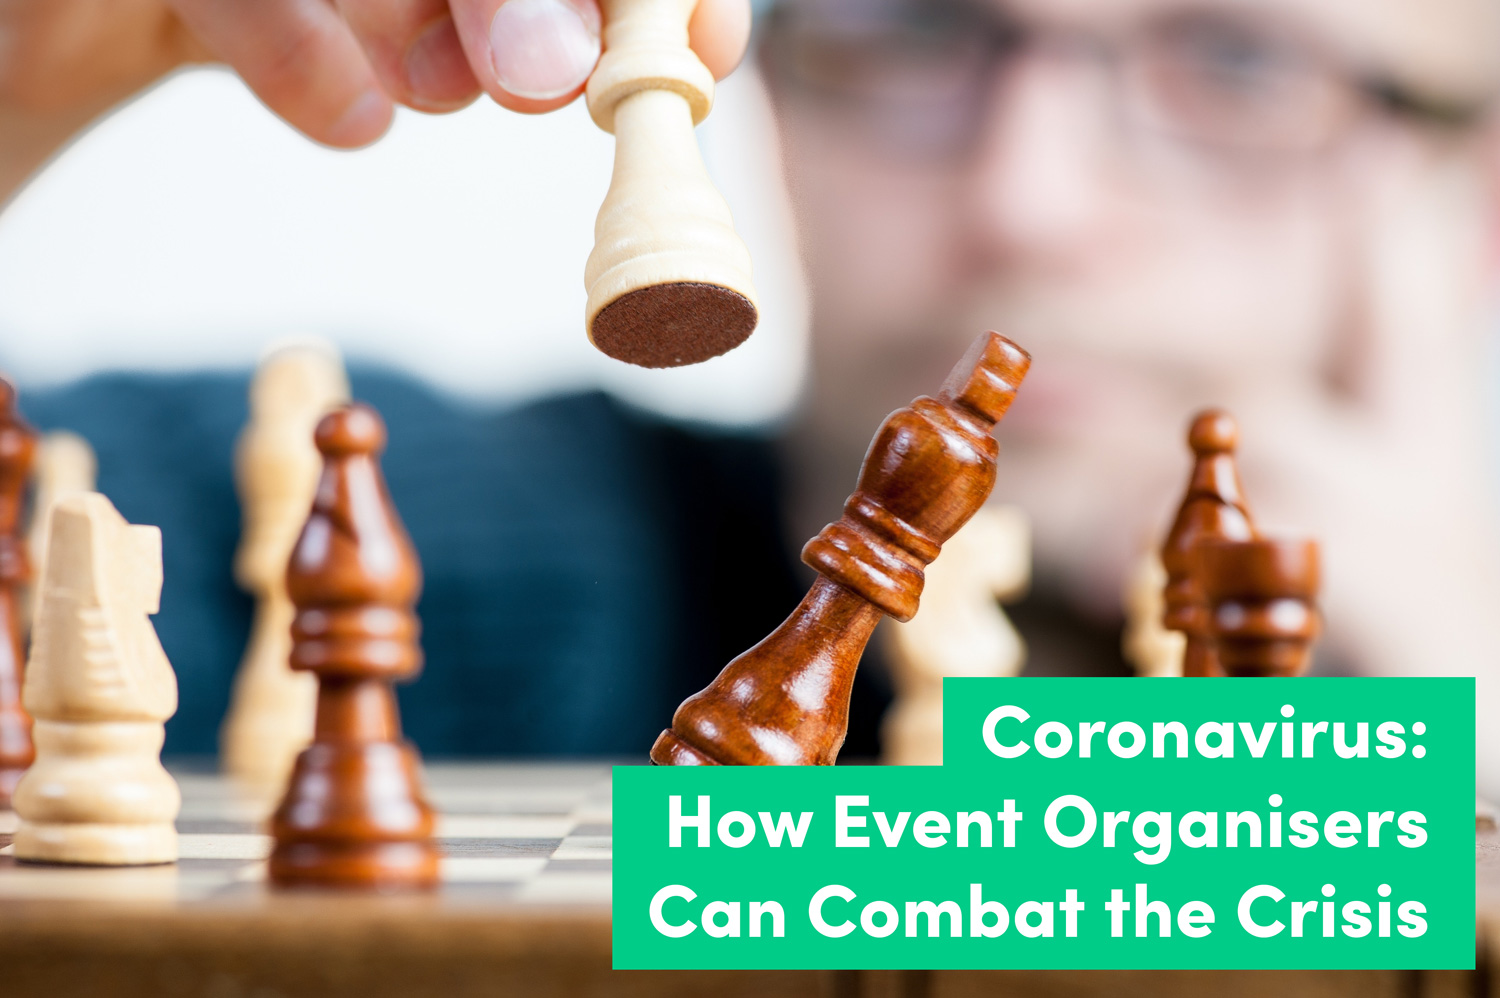 Coronavirus: How Events Organizers Can Combat the Crisis